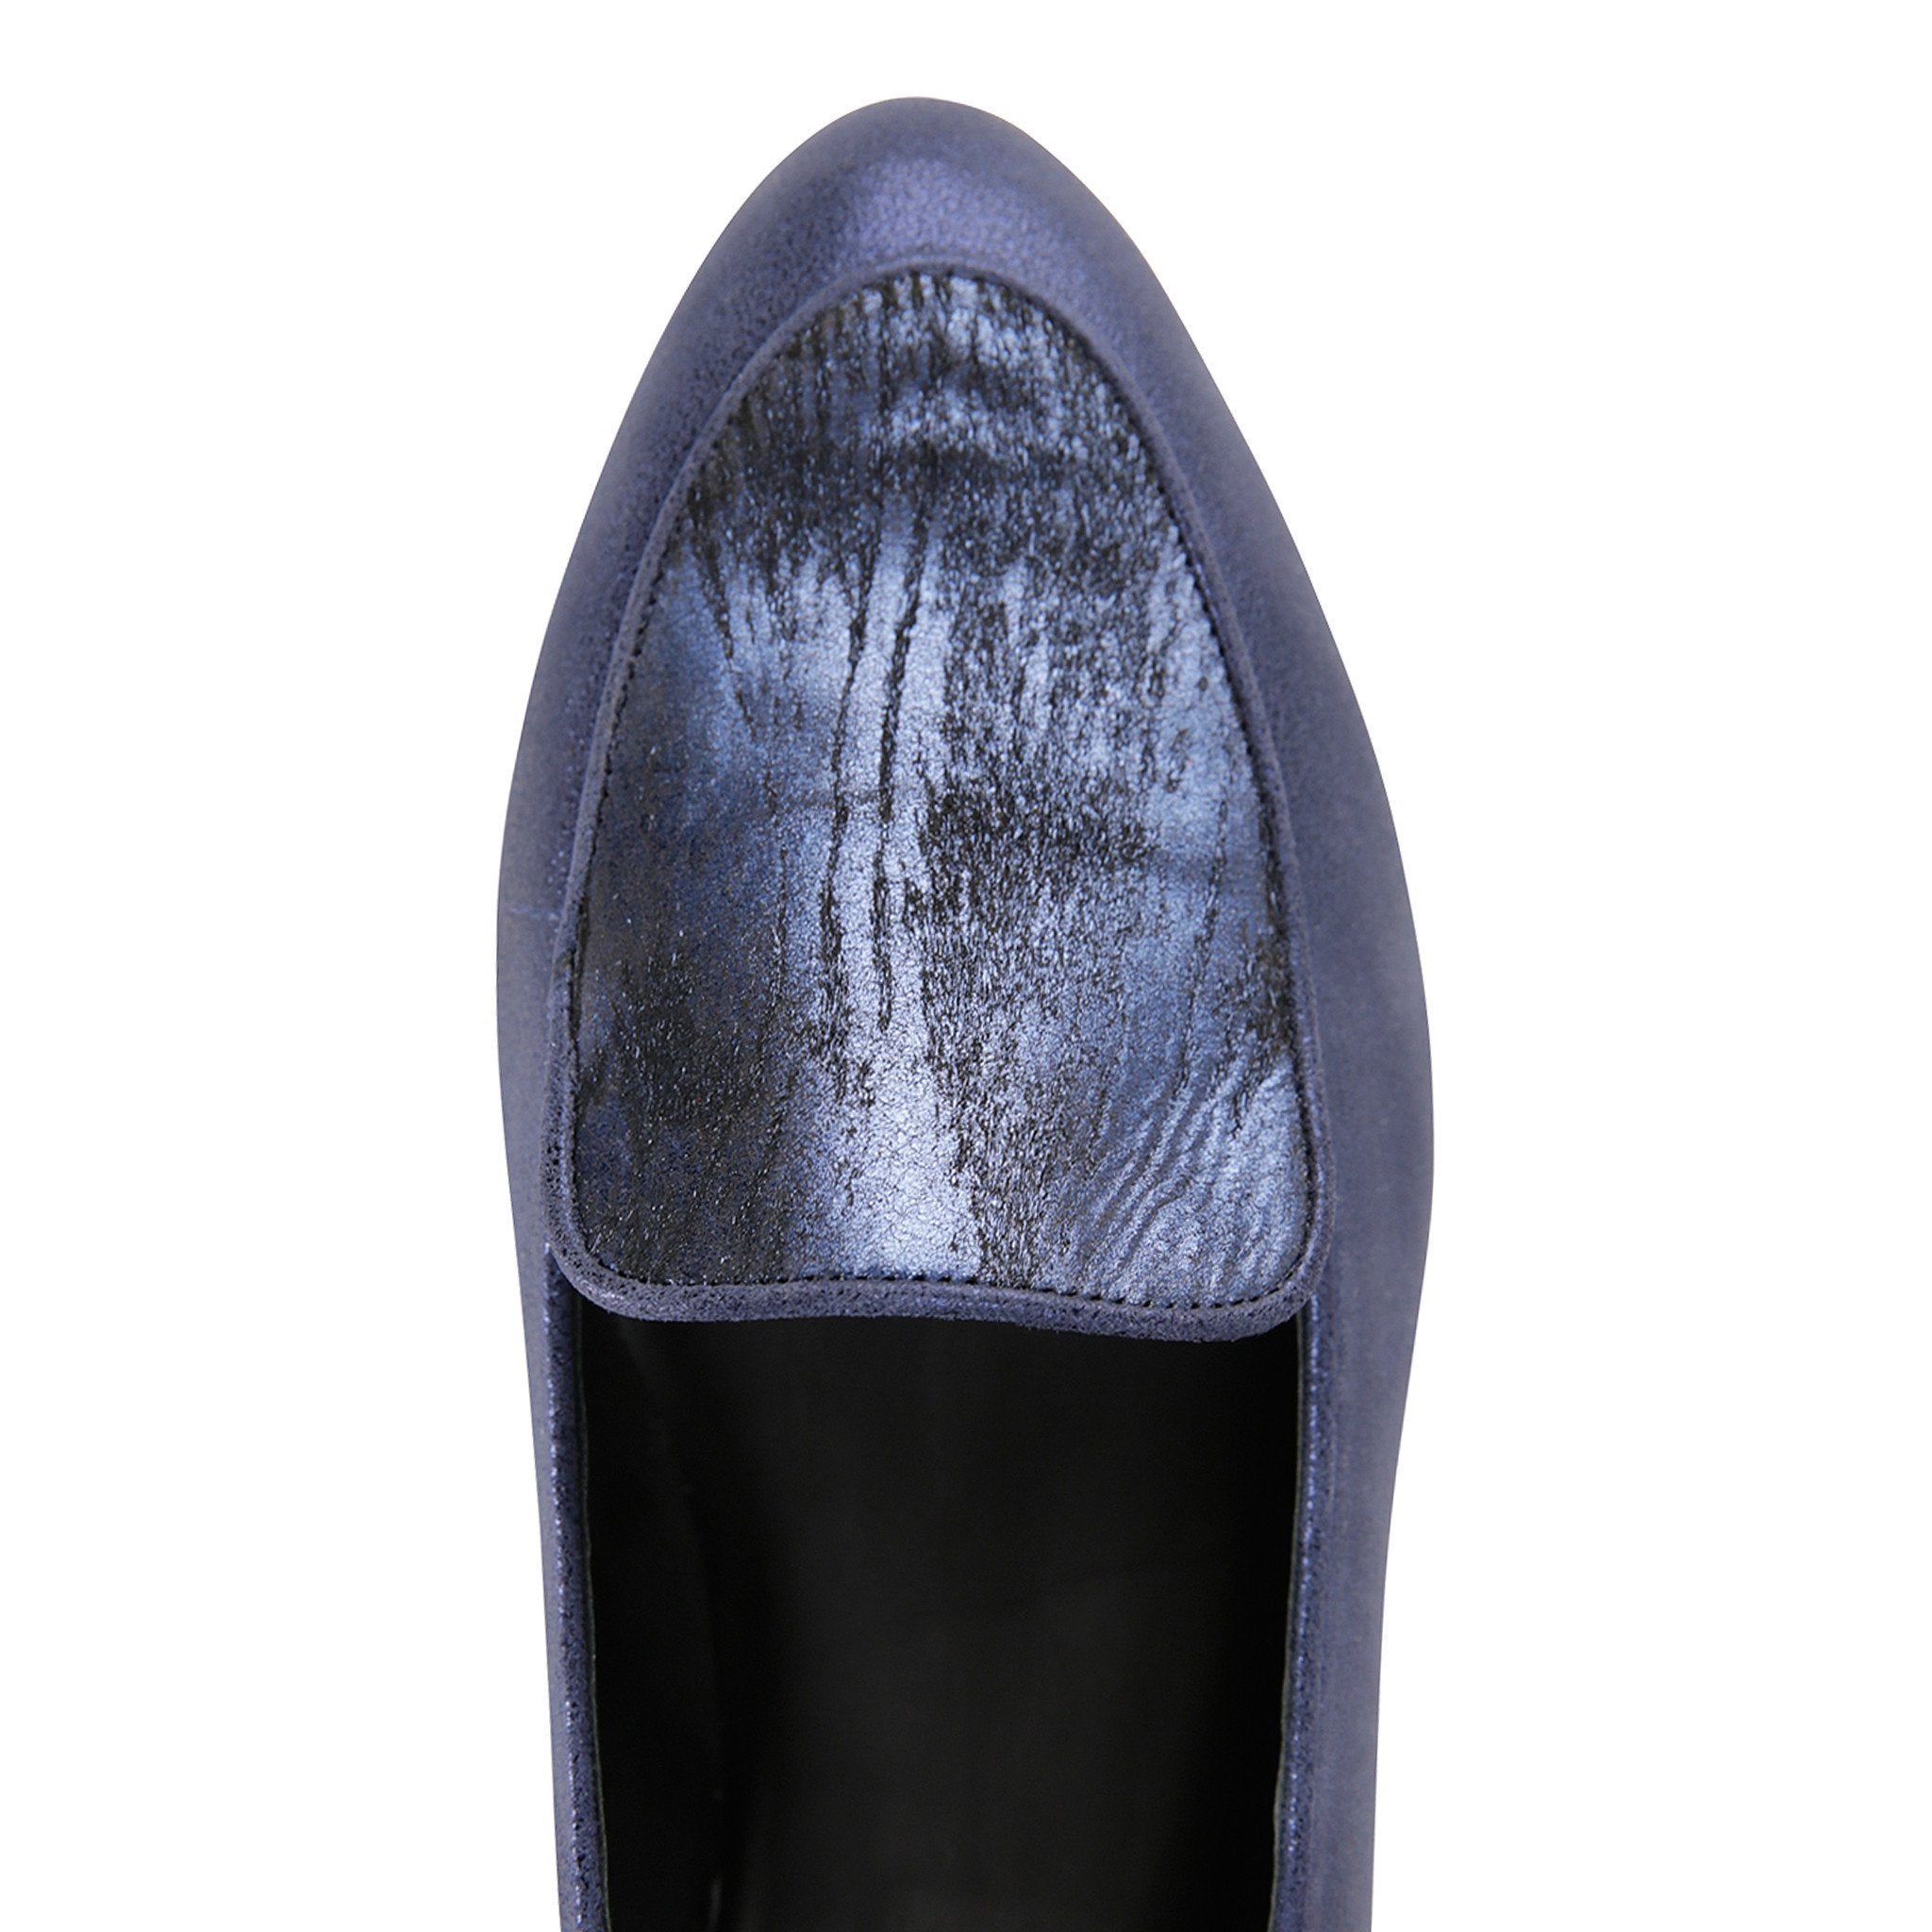 REGGIO - Burma Navy + Calf Hair Vintage Midnight, VIAJIYU - Women's Hand Made Sustainable Luxury Shoes. Made in Italy. Made to Order.